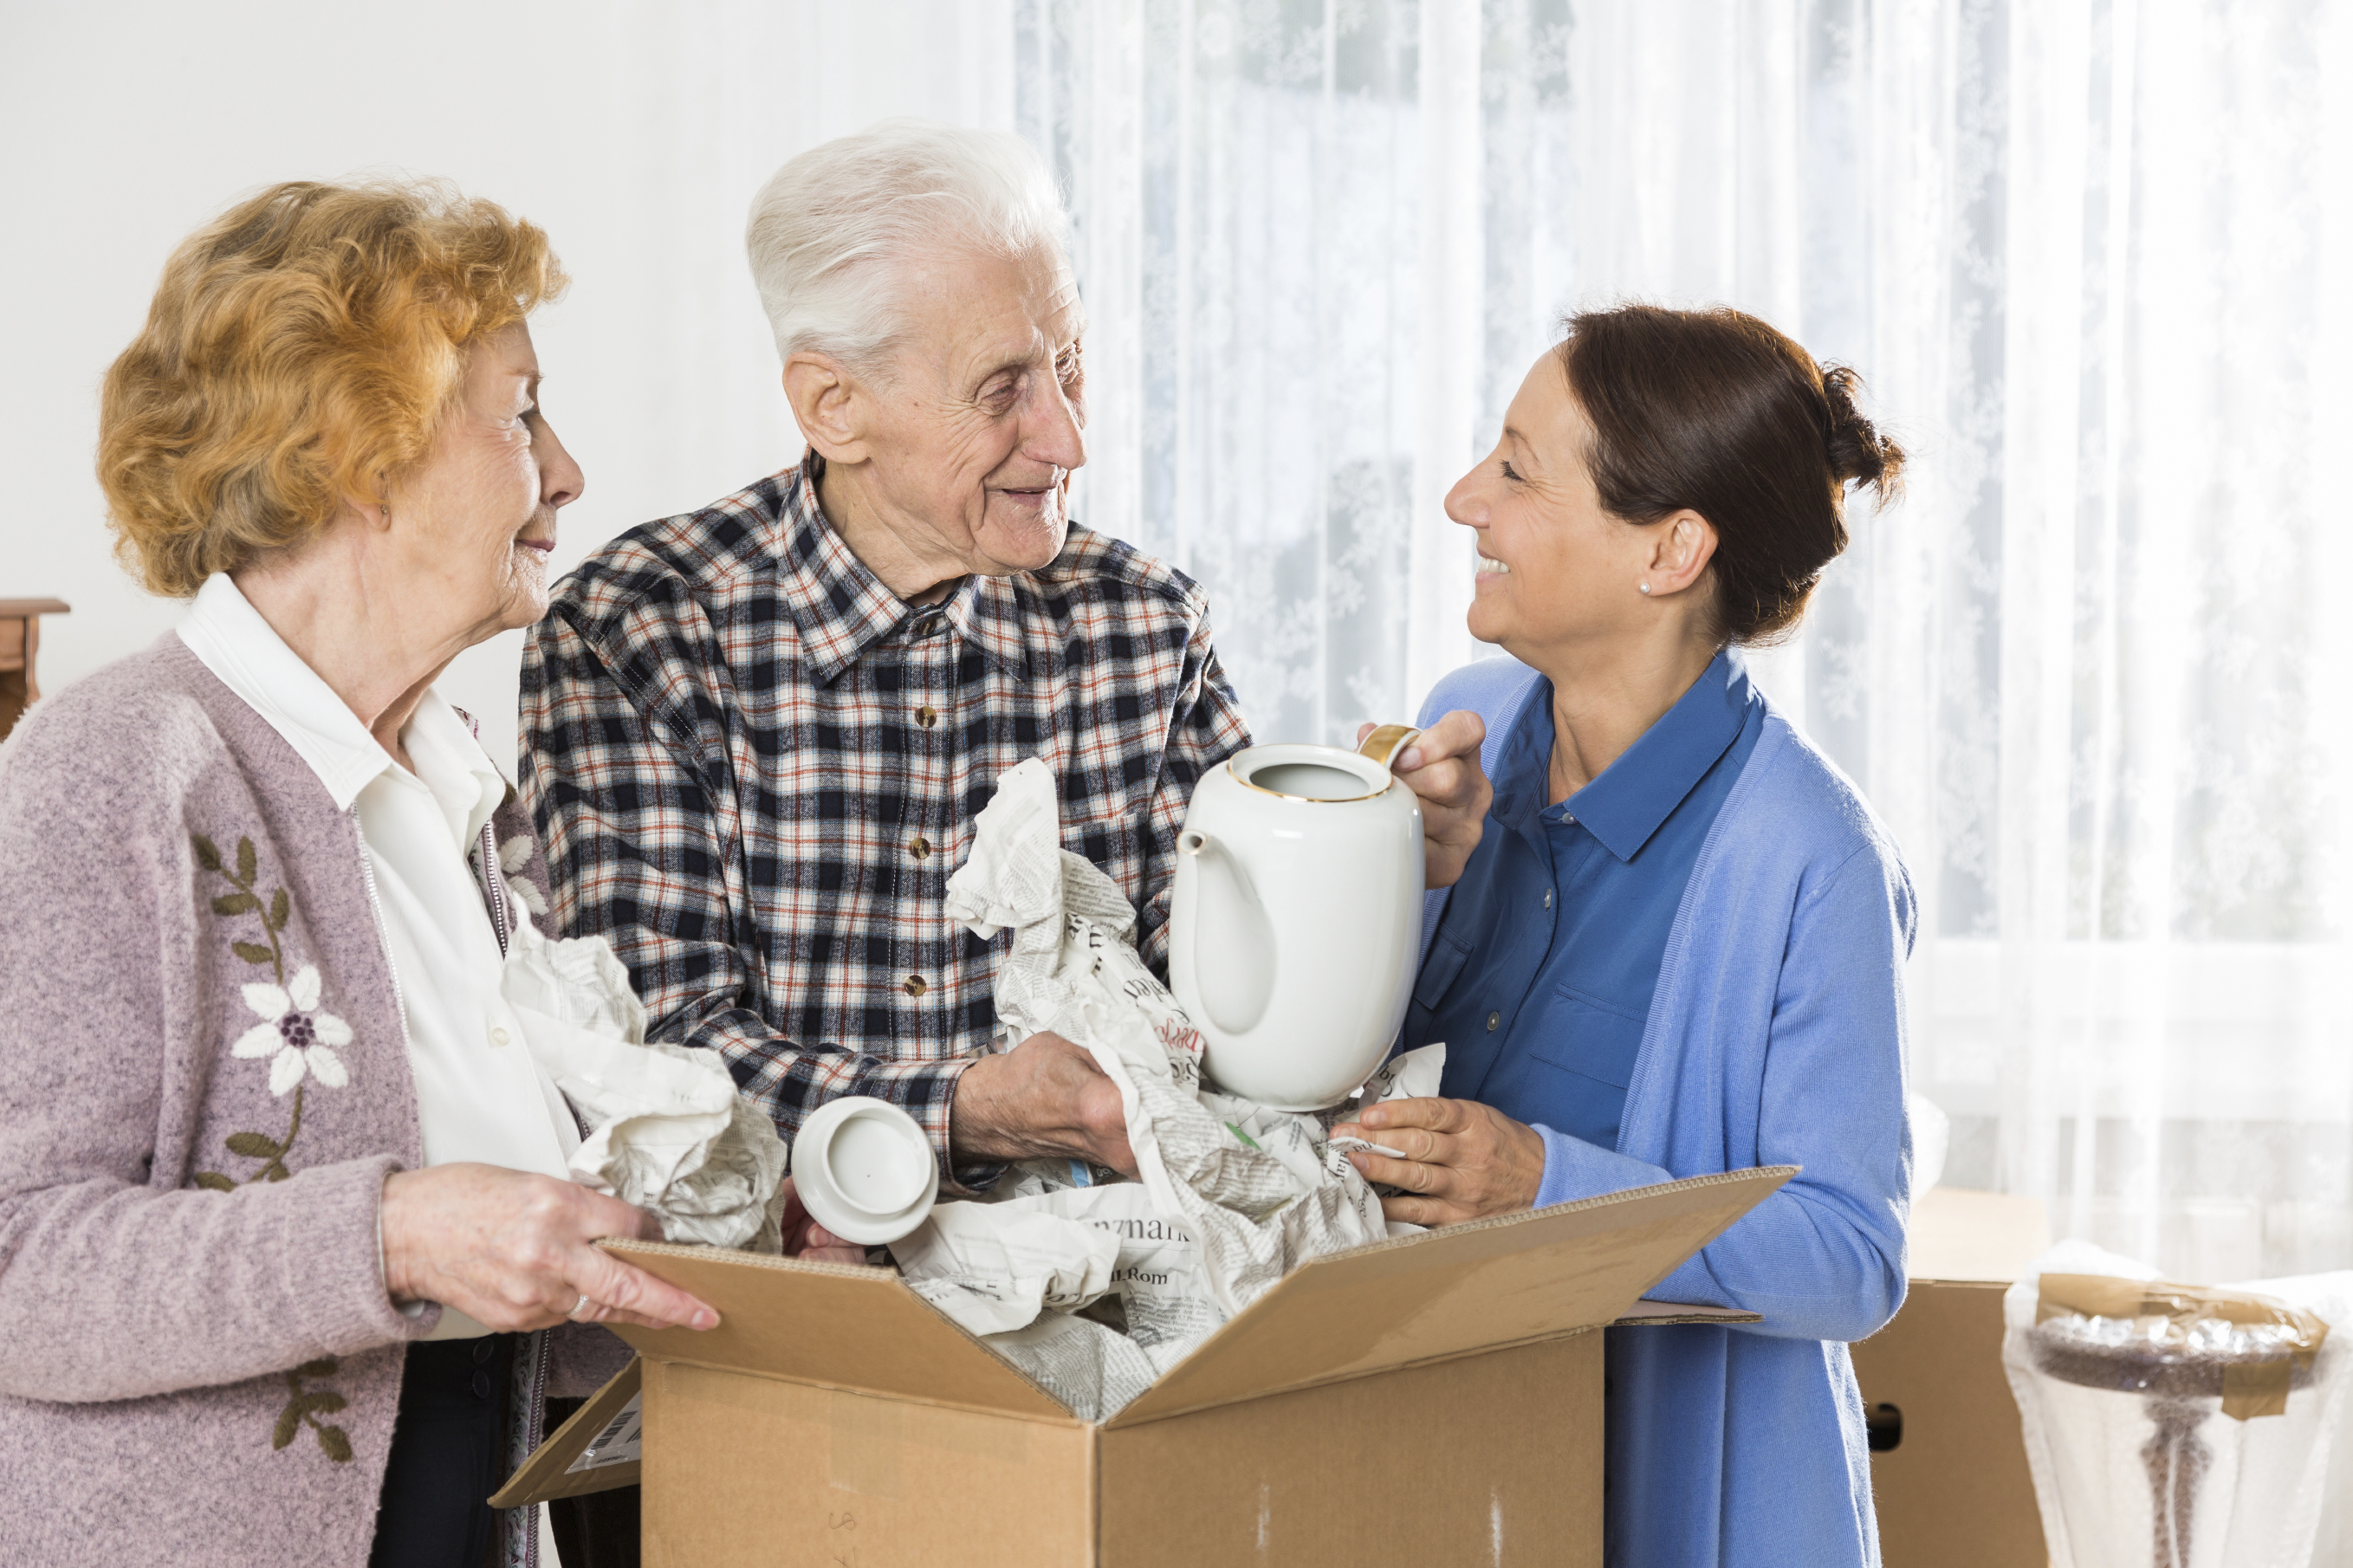 Five Helpful Tips for Moving Your Senior Parent - The Classic at Hillcrest  Greens